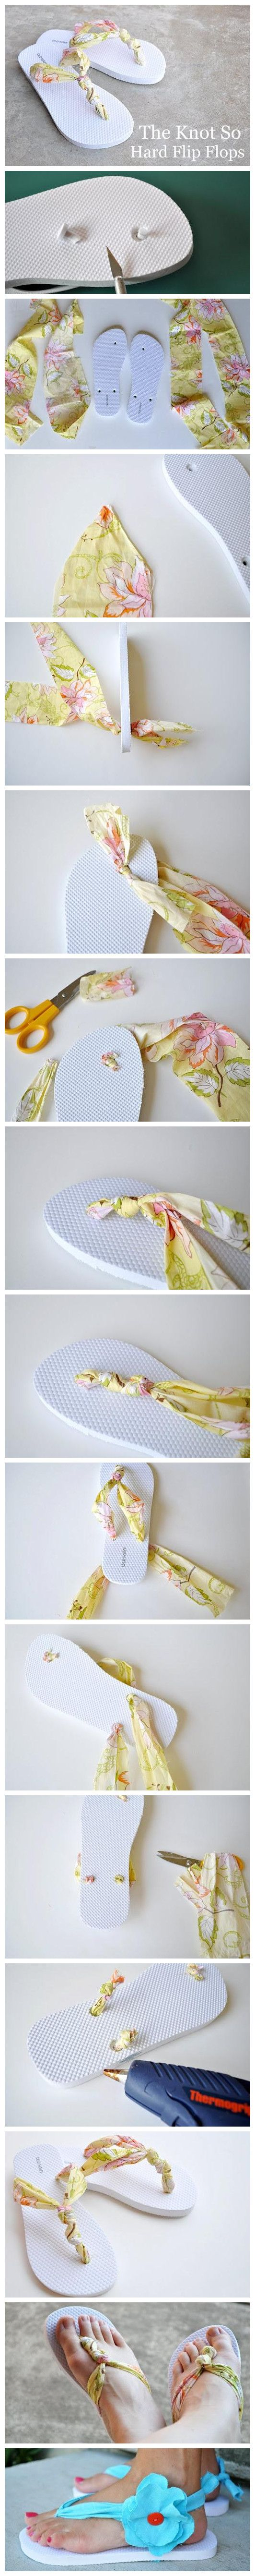 Make your own flip-flops